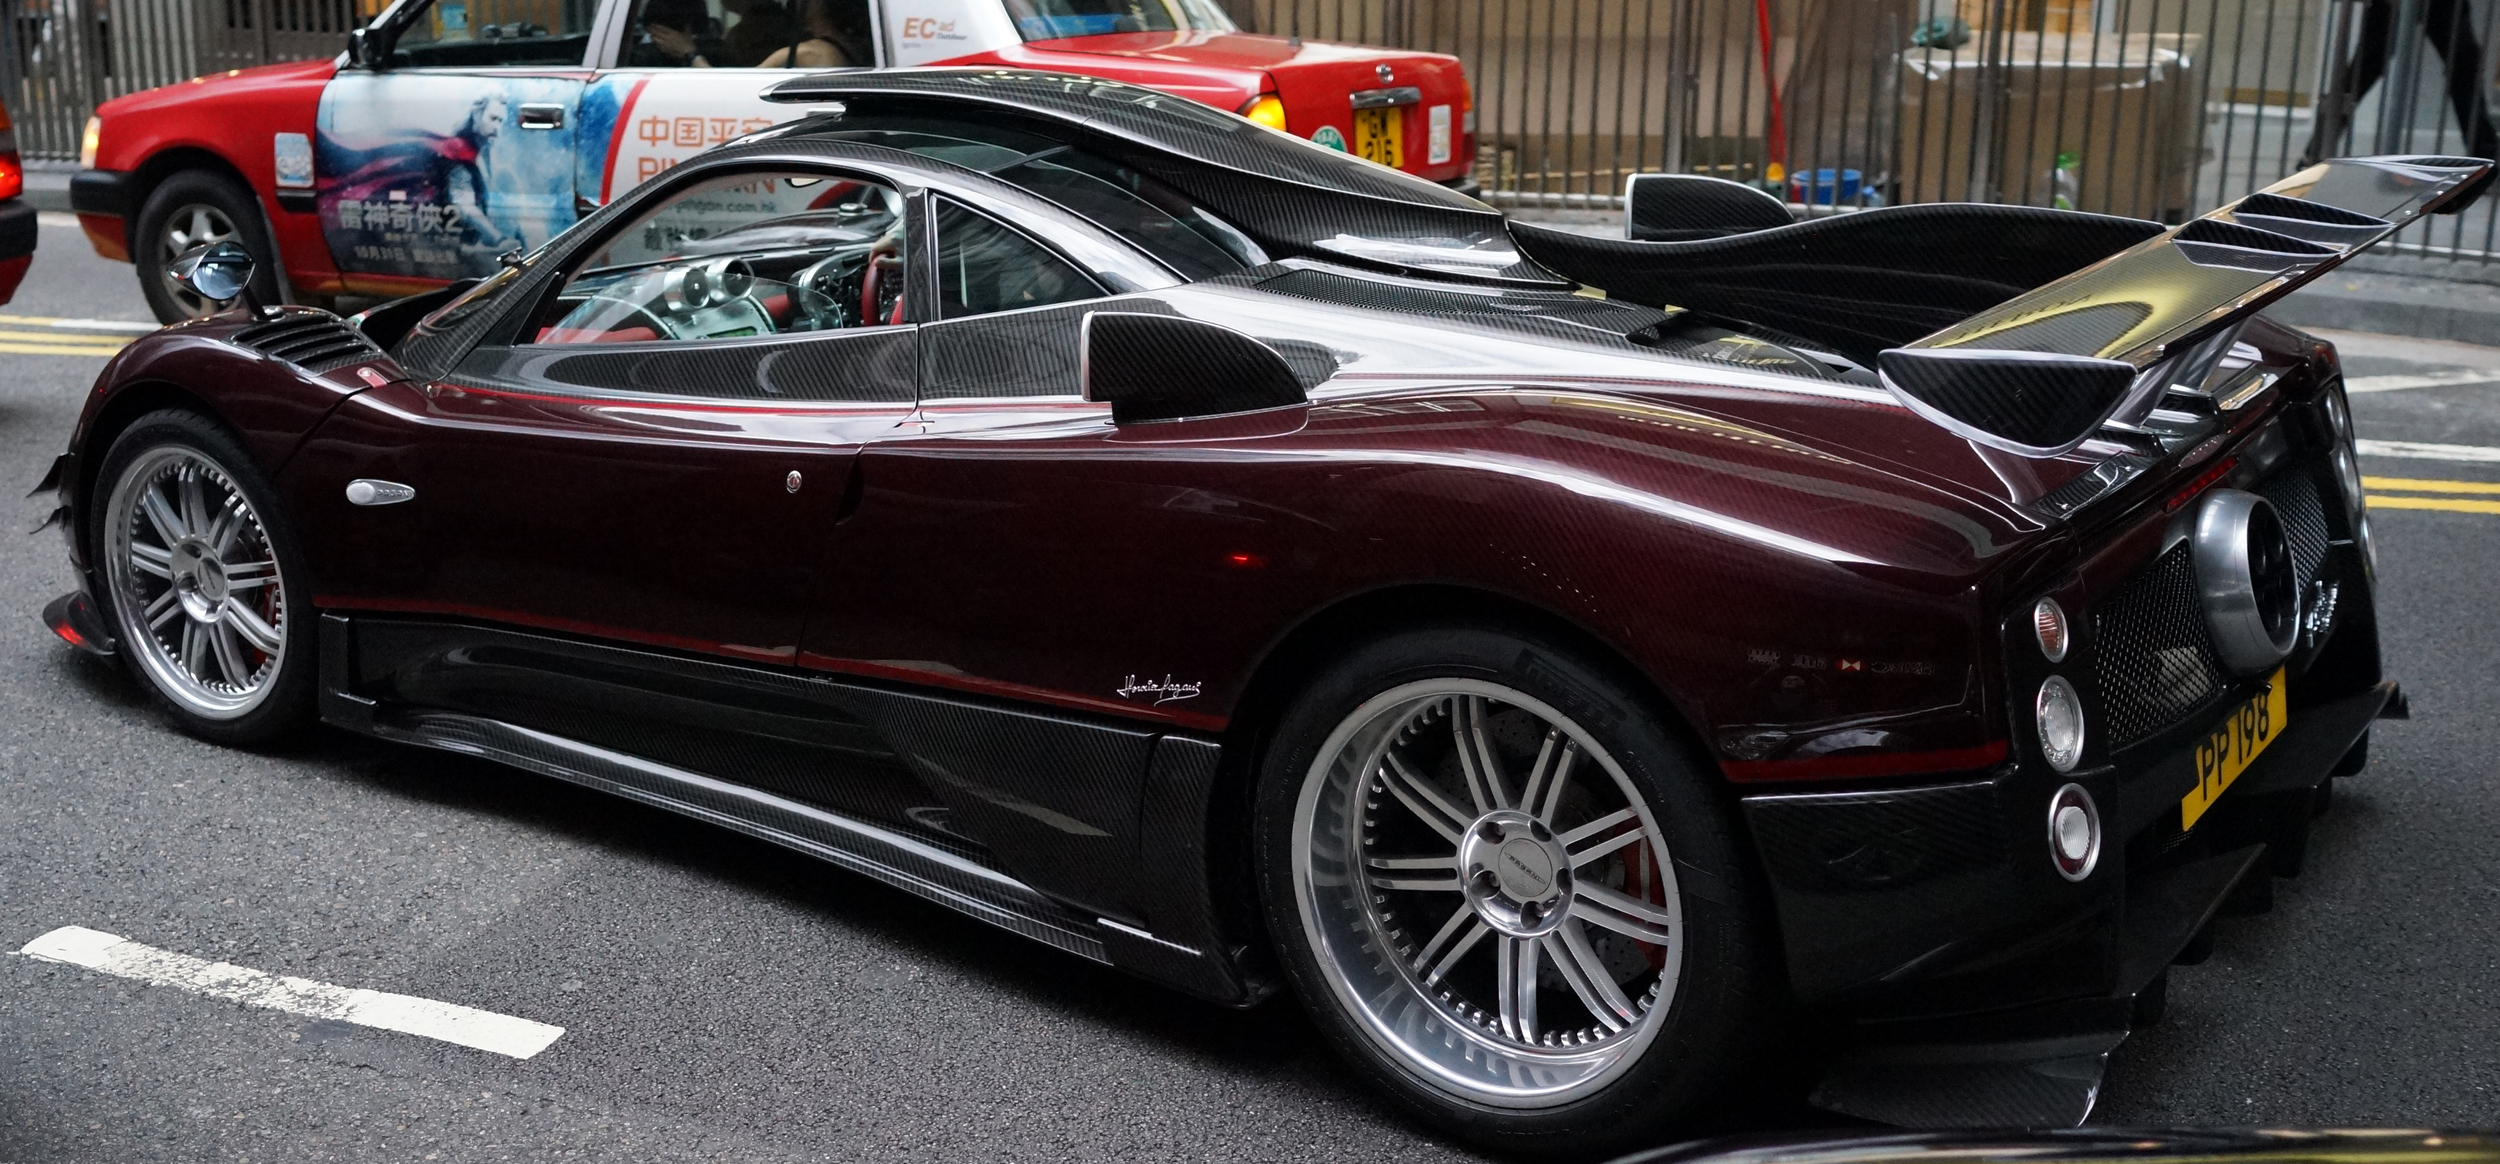 Pagani - PP 198  / A very in your face car with a very subtle number plate, essentially 198 translates to certain long life and wealth. I still remember the day I took this image, I ran into moving traffic to get the shot as for me this is simply the most amazing car in Hong Kong.